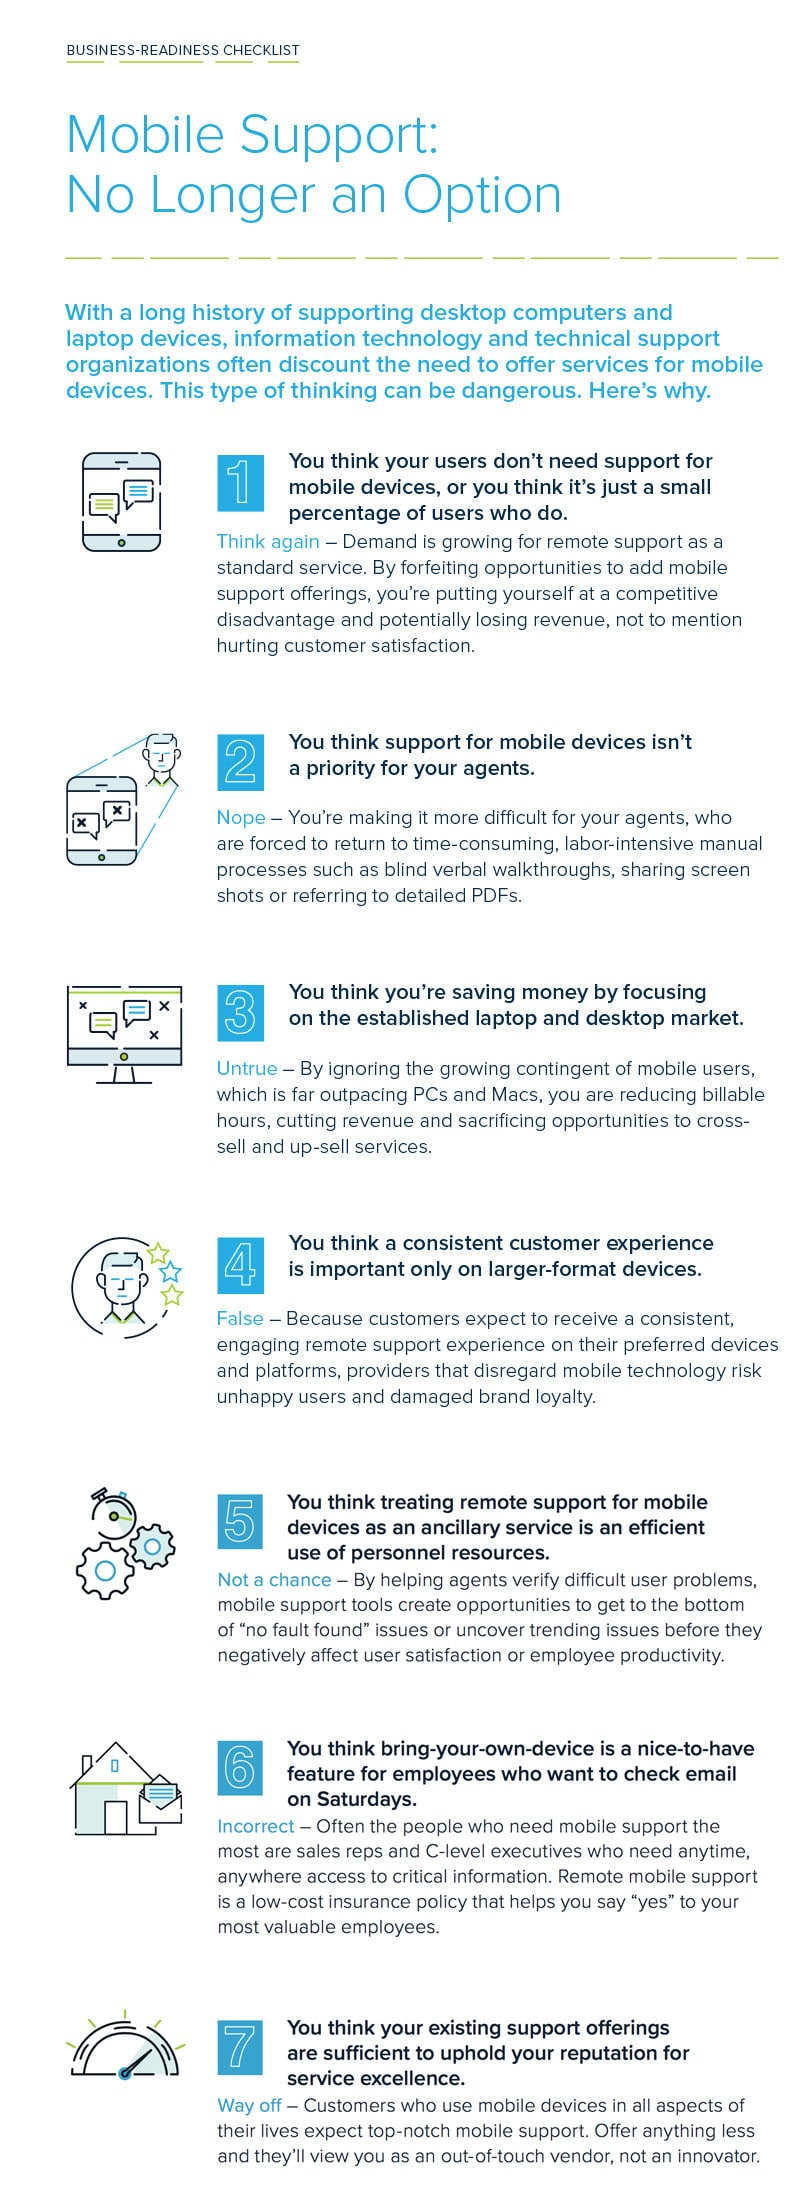 Infographic: Mobile Support Is No Longer an Option